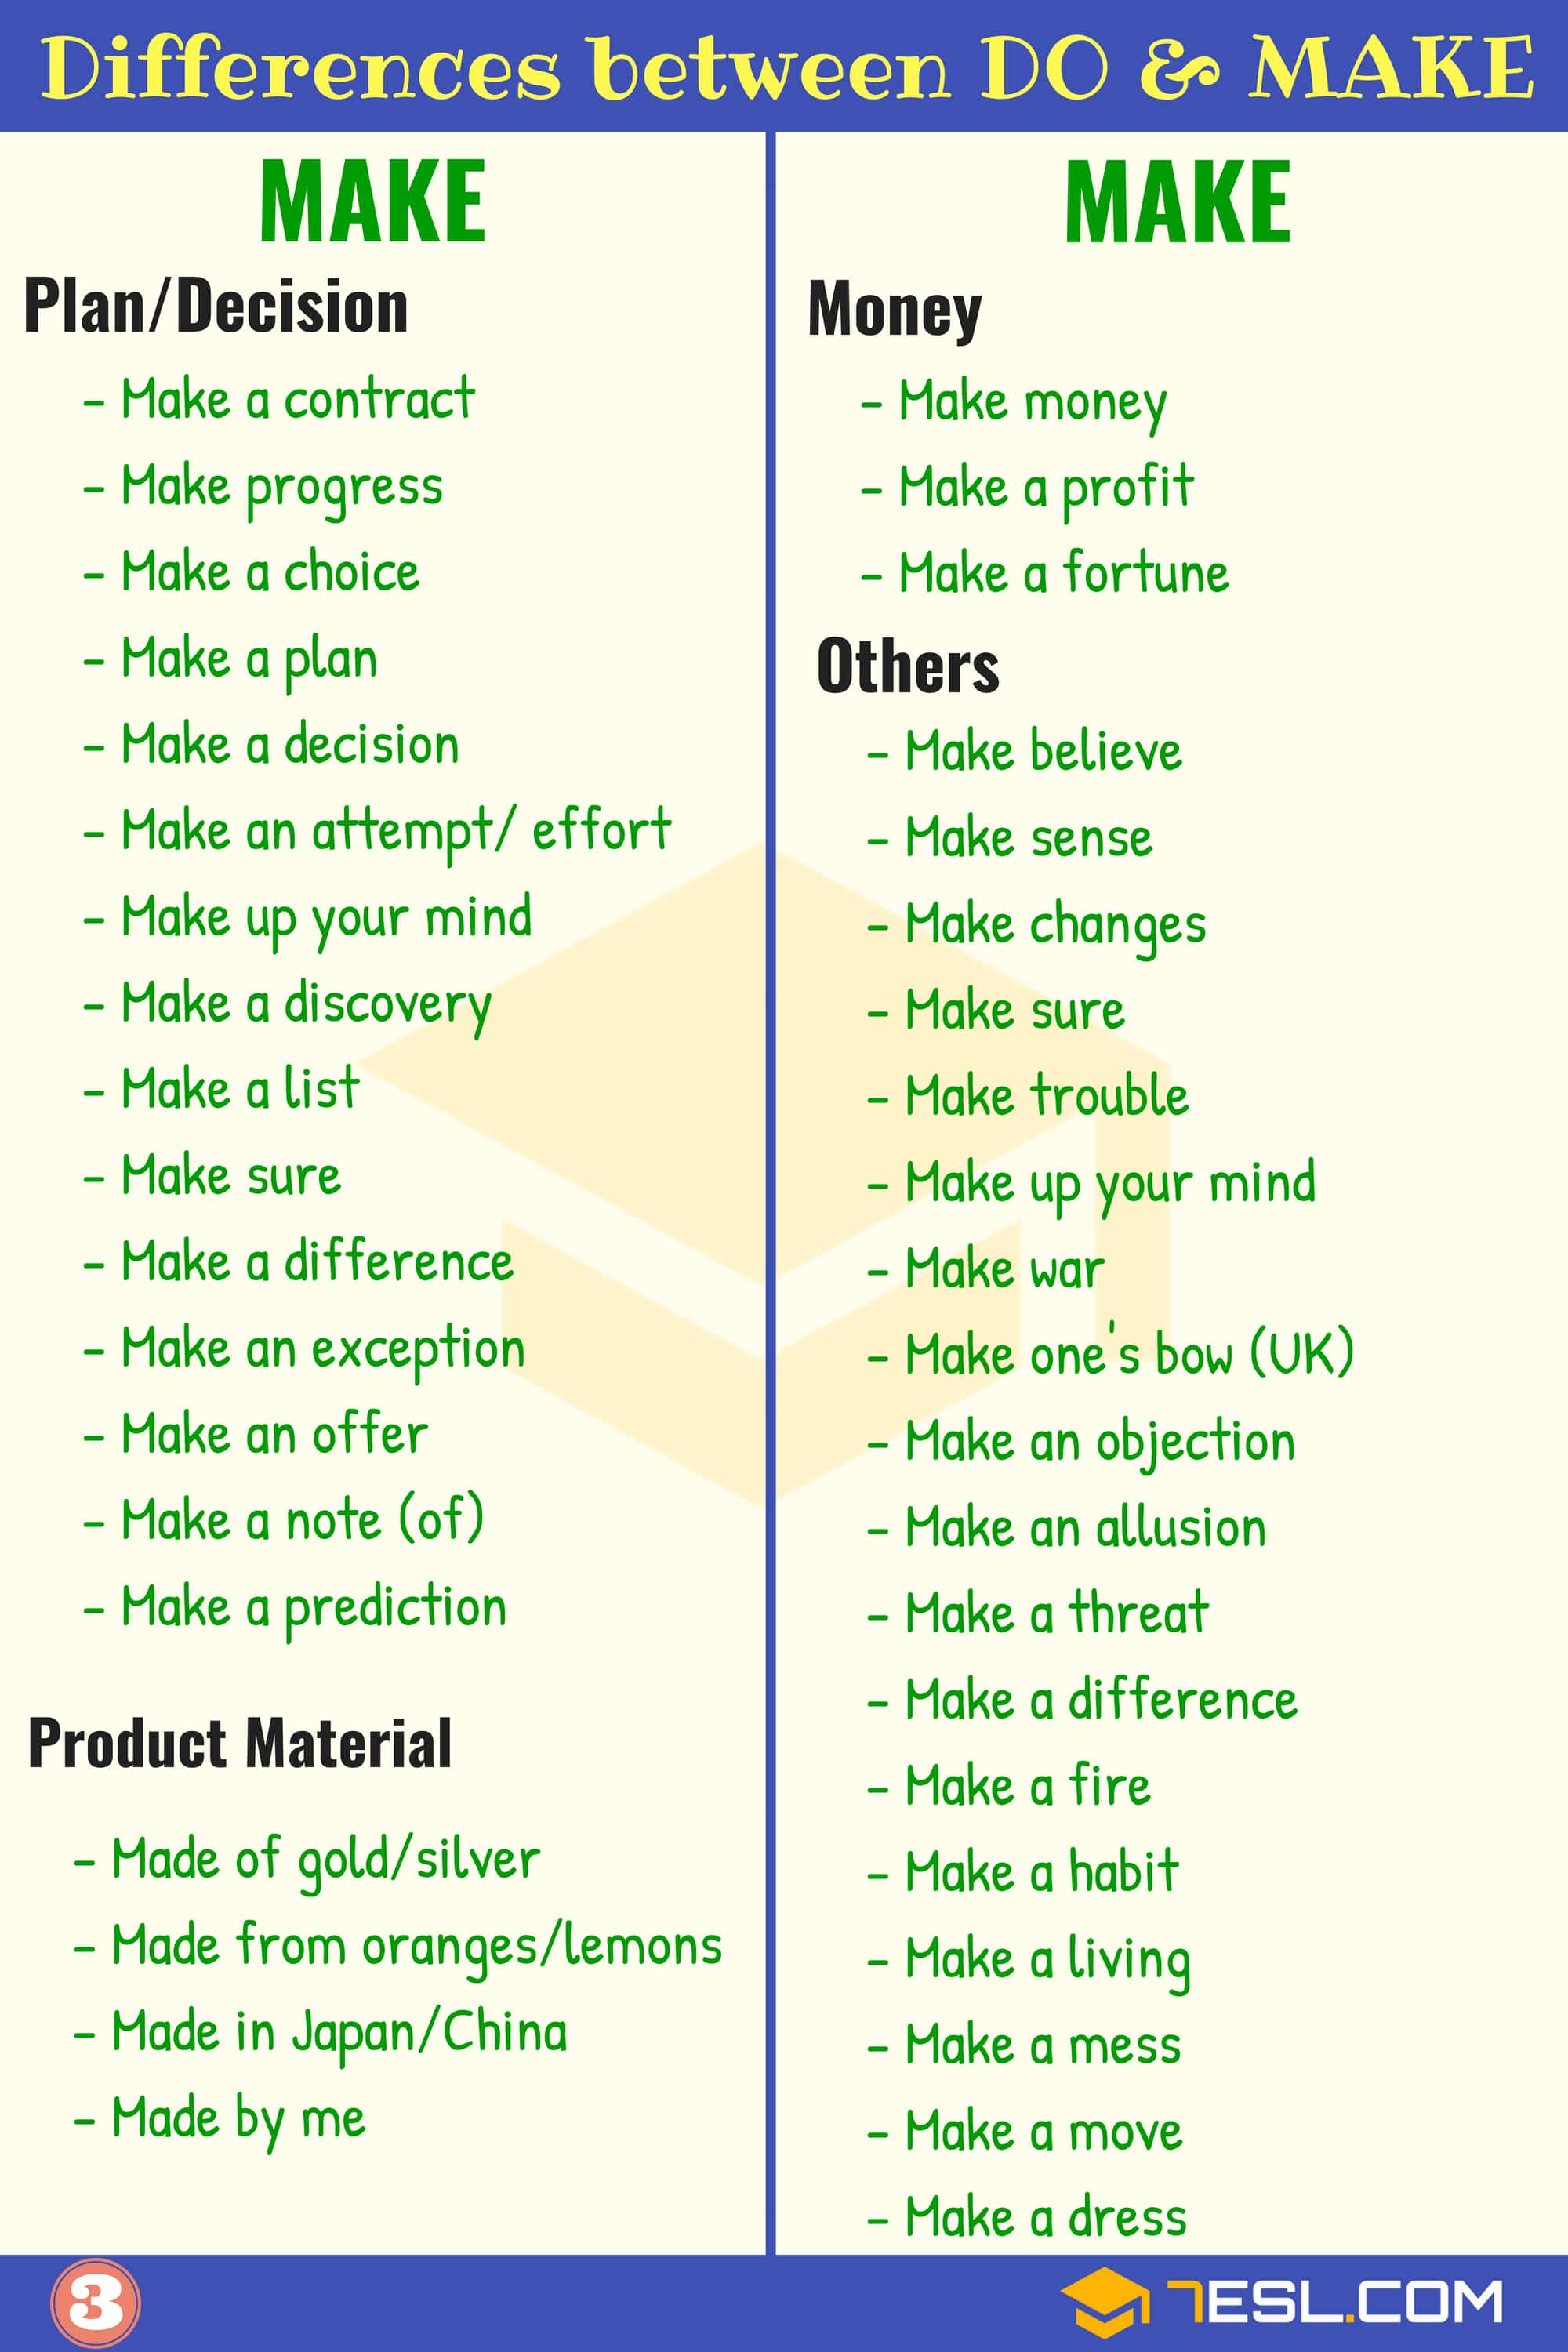 Differences between Do vs. Make